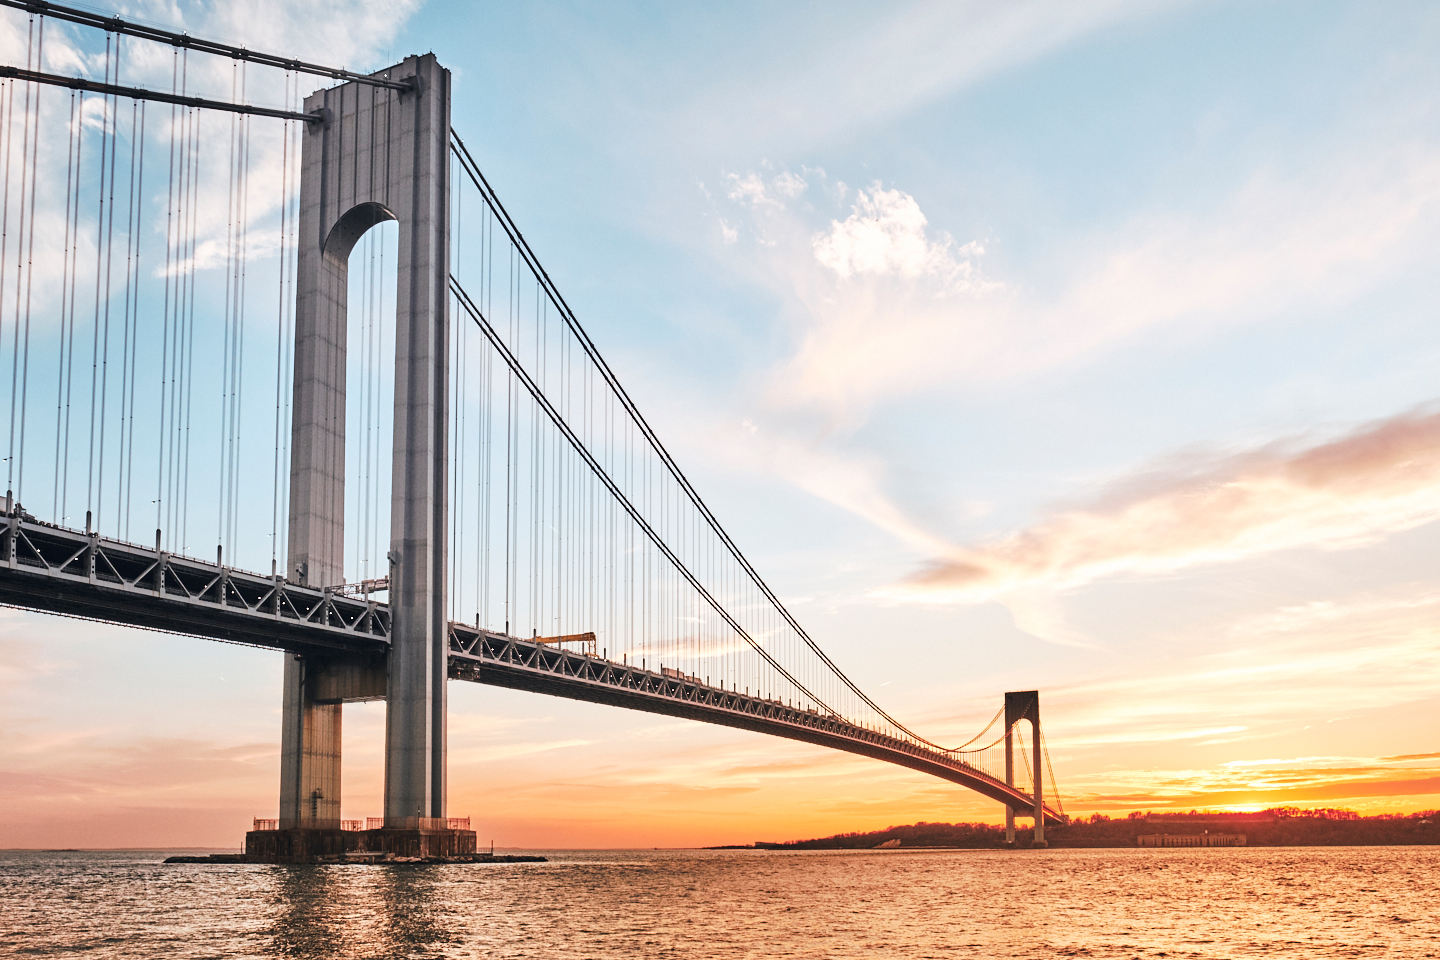 New York Verrazano Bridge Travel Photographer Marcus Lewis web-100-percent